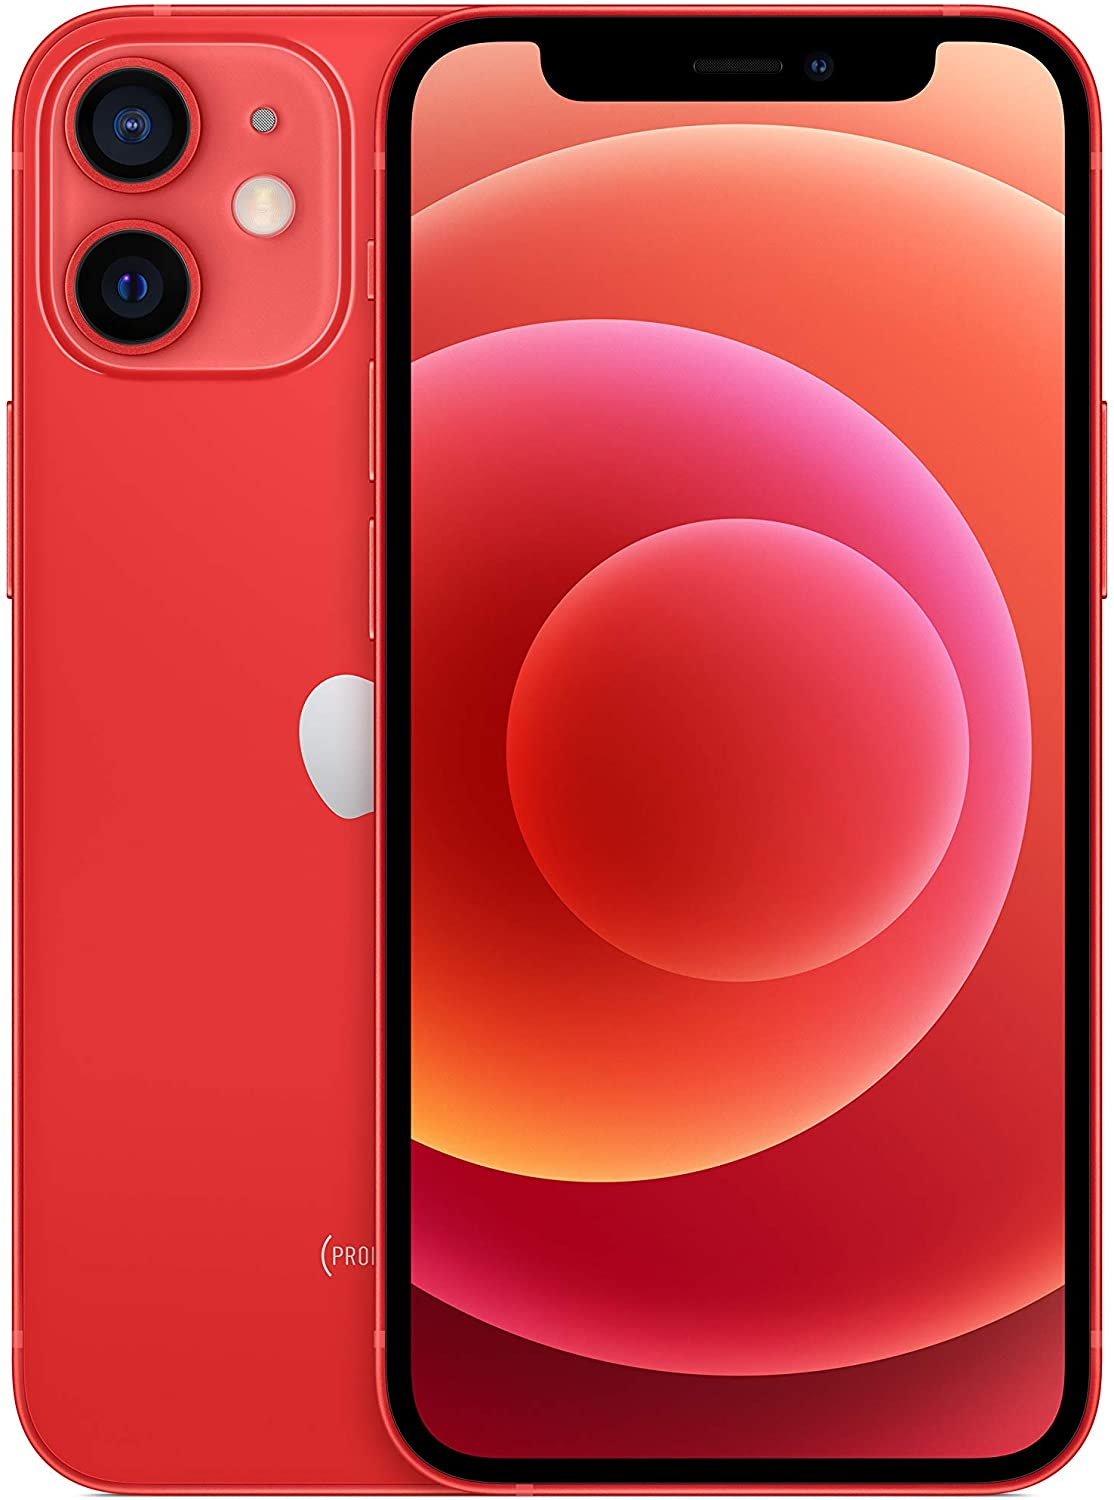 Apple iPhone 12 mini 64GB, Handy (Product Red, iOS) MGE03ZD/A Mobilais Telefons